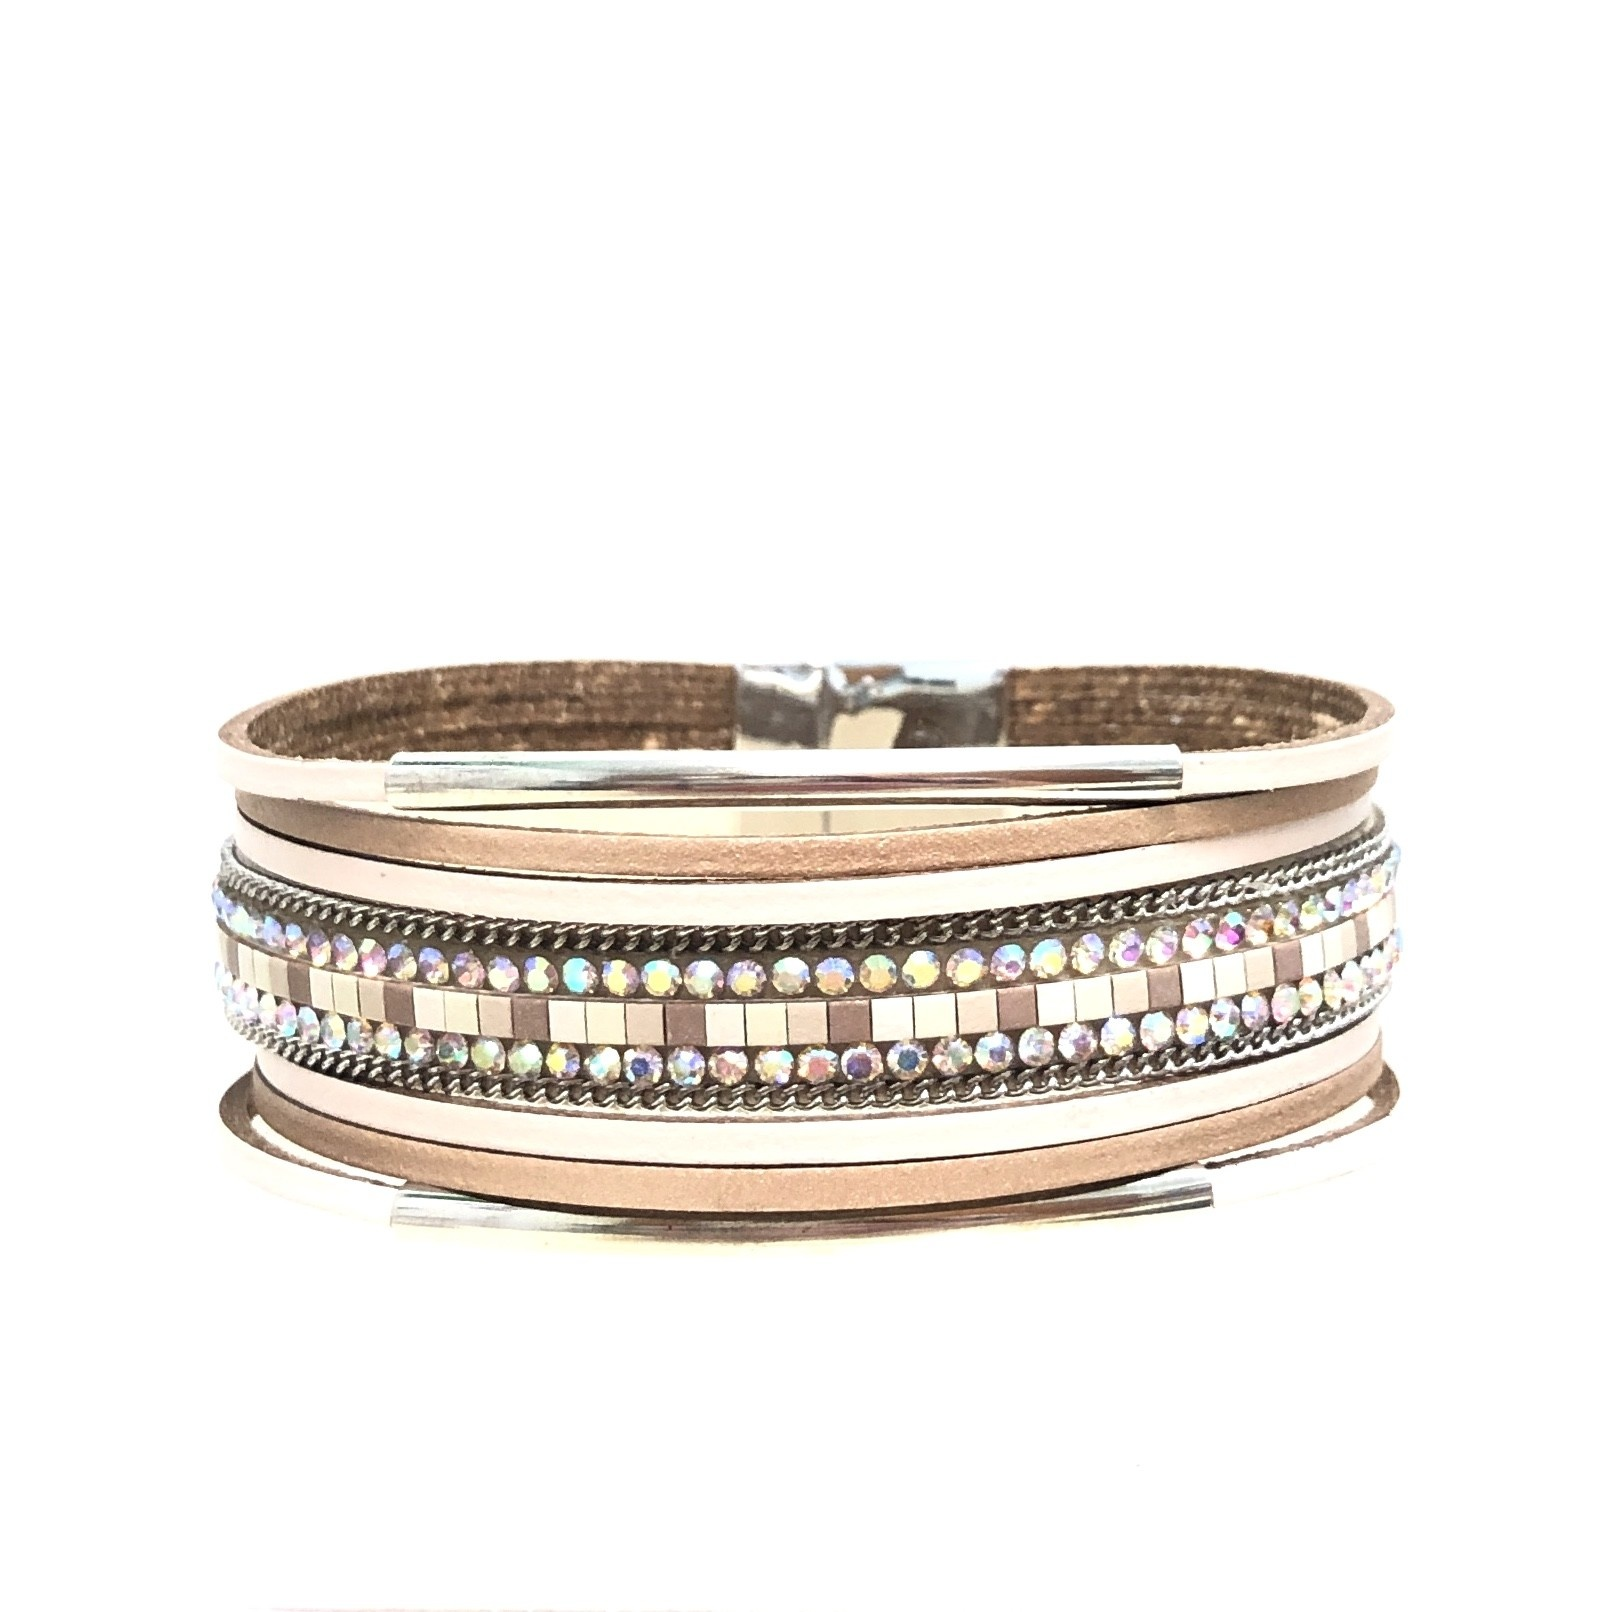 Sunrise USA Trading Beige Double Bar Leather Bracelet